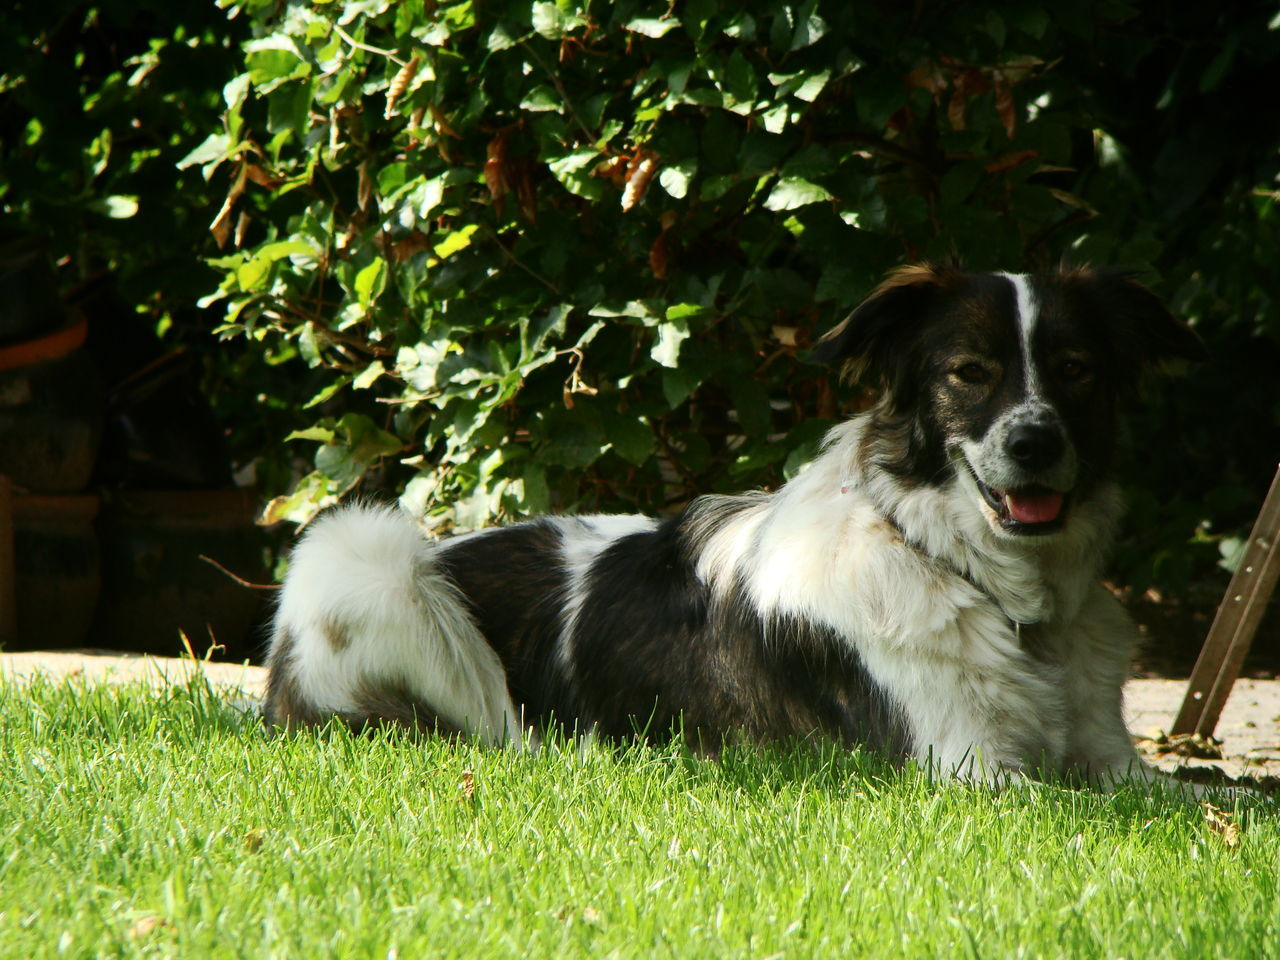 grass, dog, domestic animals, pets, mammal, animal themes, one animal, field, growth, green color, outdoors, nature, day, no people